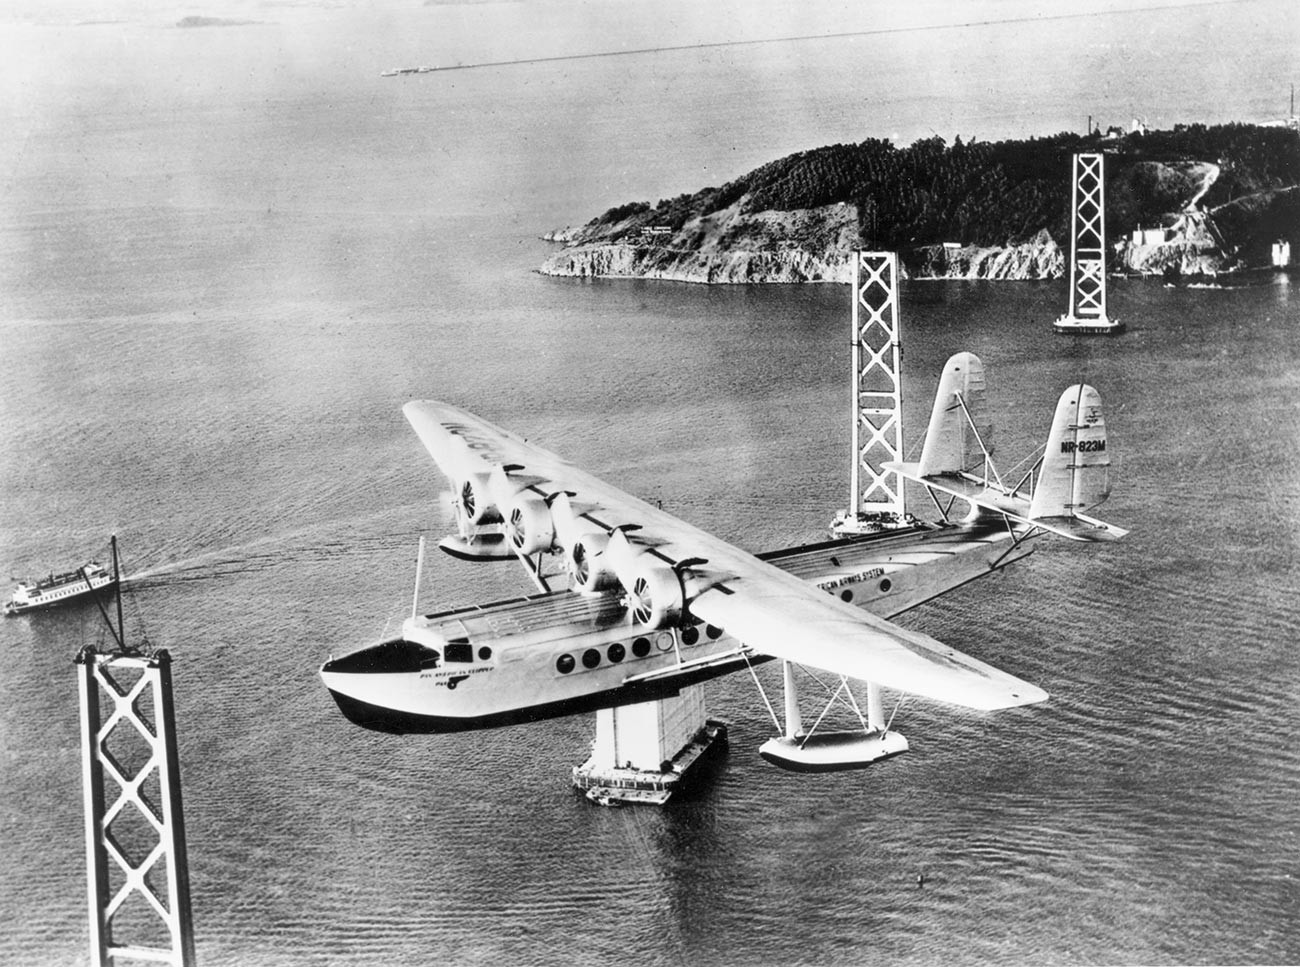 Pan American Airways Sikorsky S-42